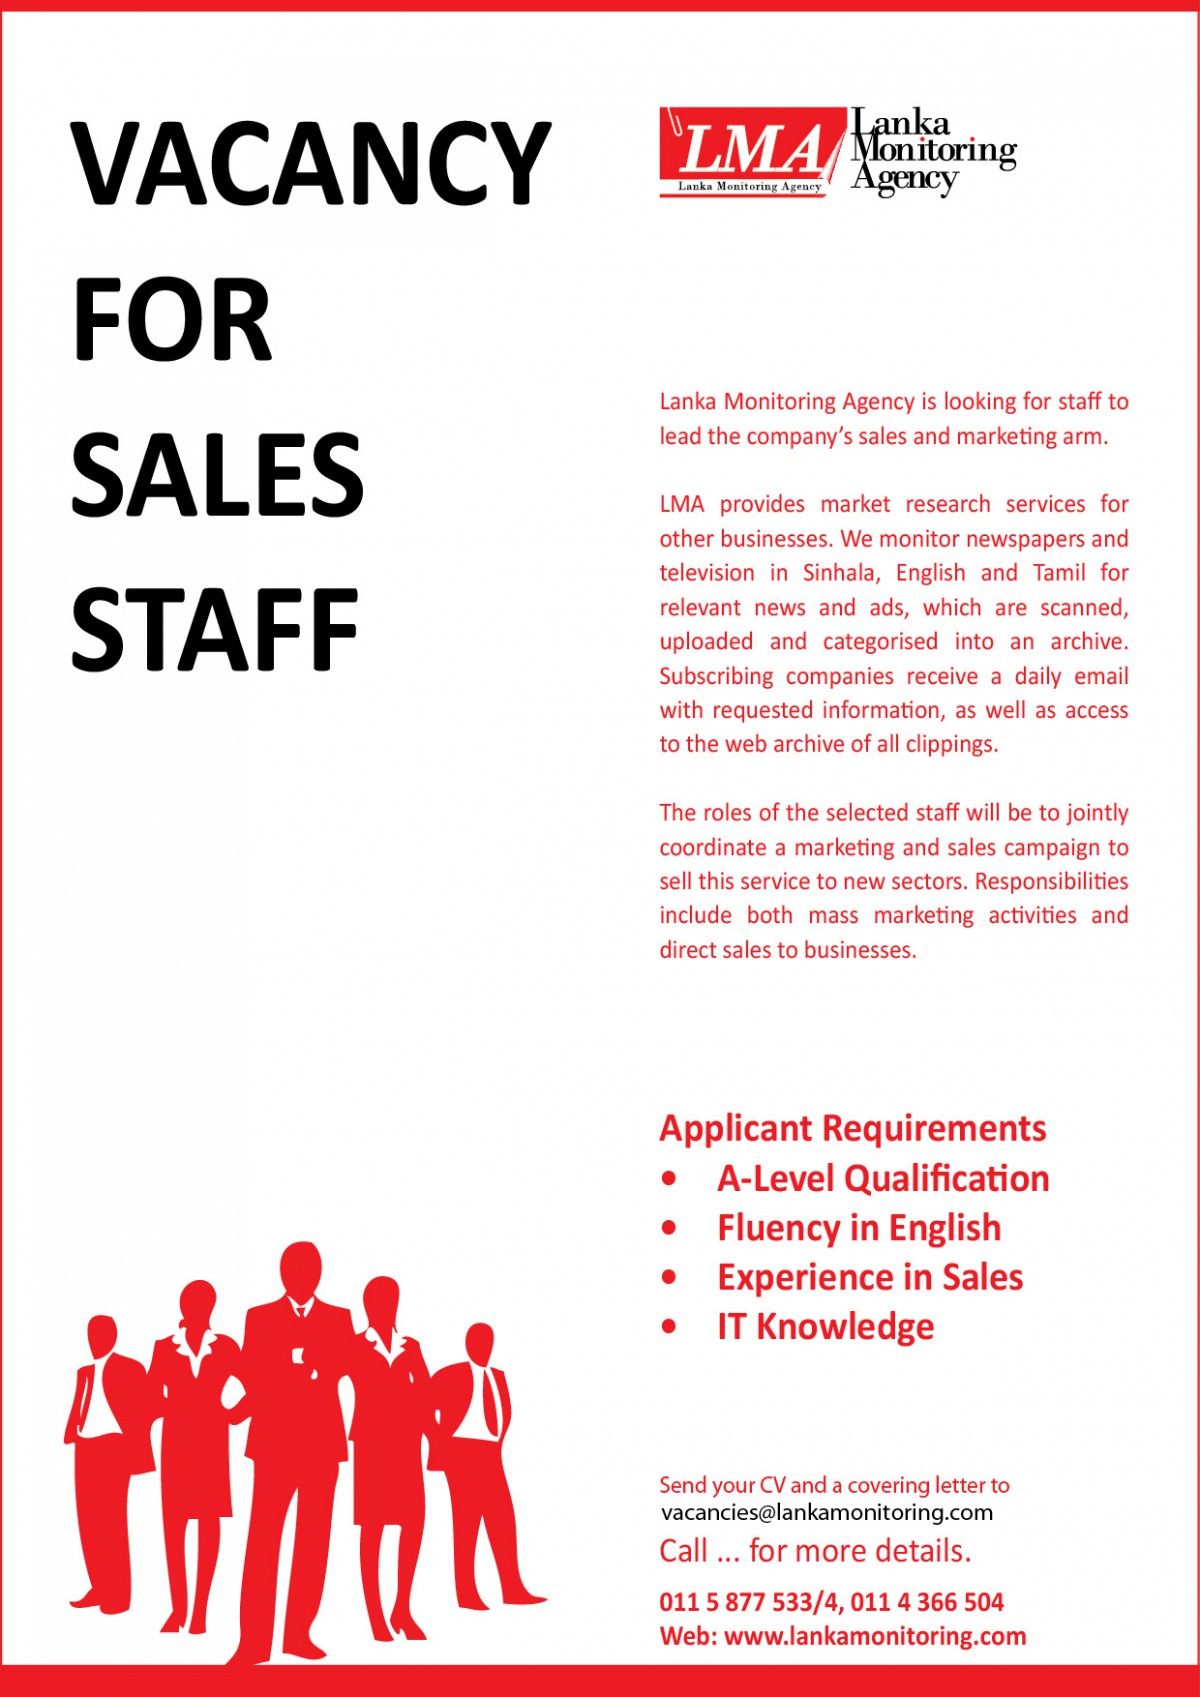 vacancy for s staff job vacancy in sri lanka the roles of the selected staff will be to jointly coordinate a marketing and s campaign to sell this service to new sectors responsibilities include